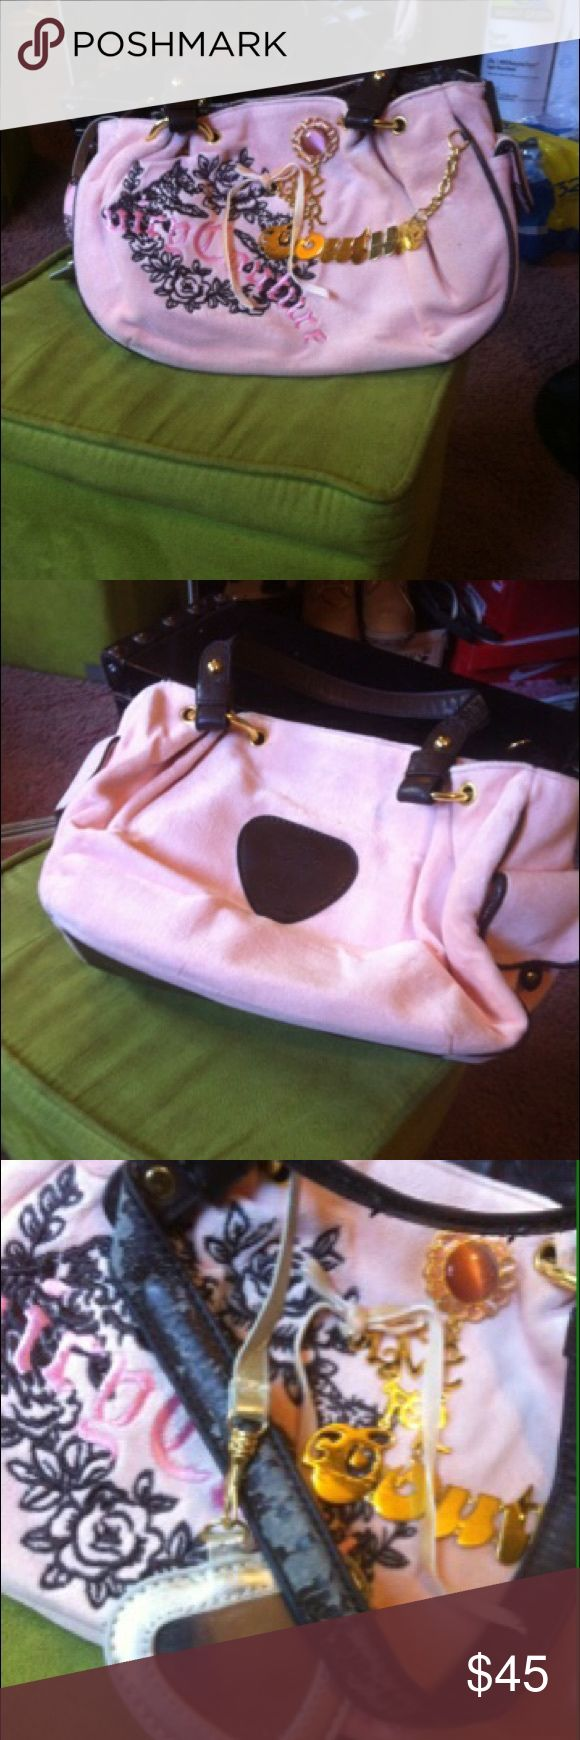 Juicy couture Classic Juicy couture look //Used handbag // good condition. // wear on the handles as pictures. With dust bag ! Juicy Couture Bags Shoulder Bags